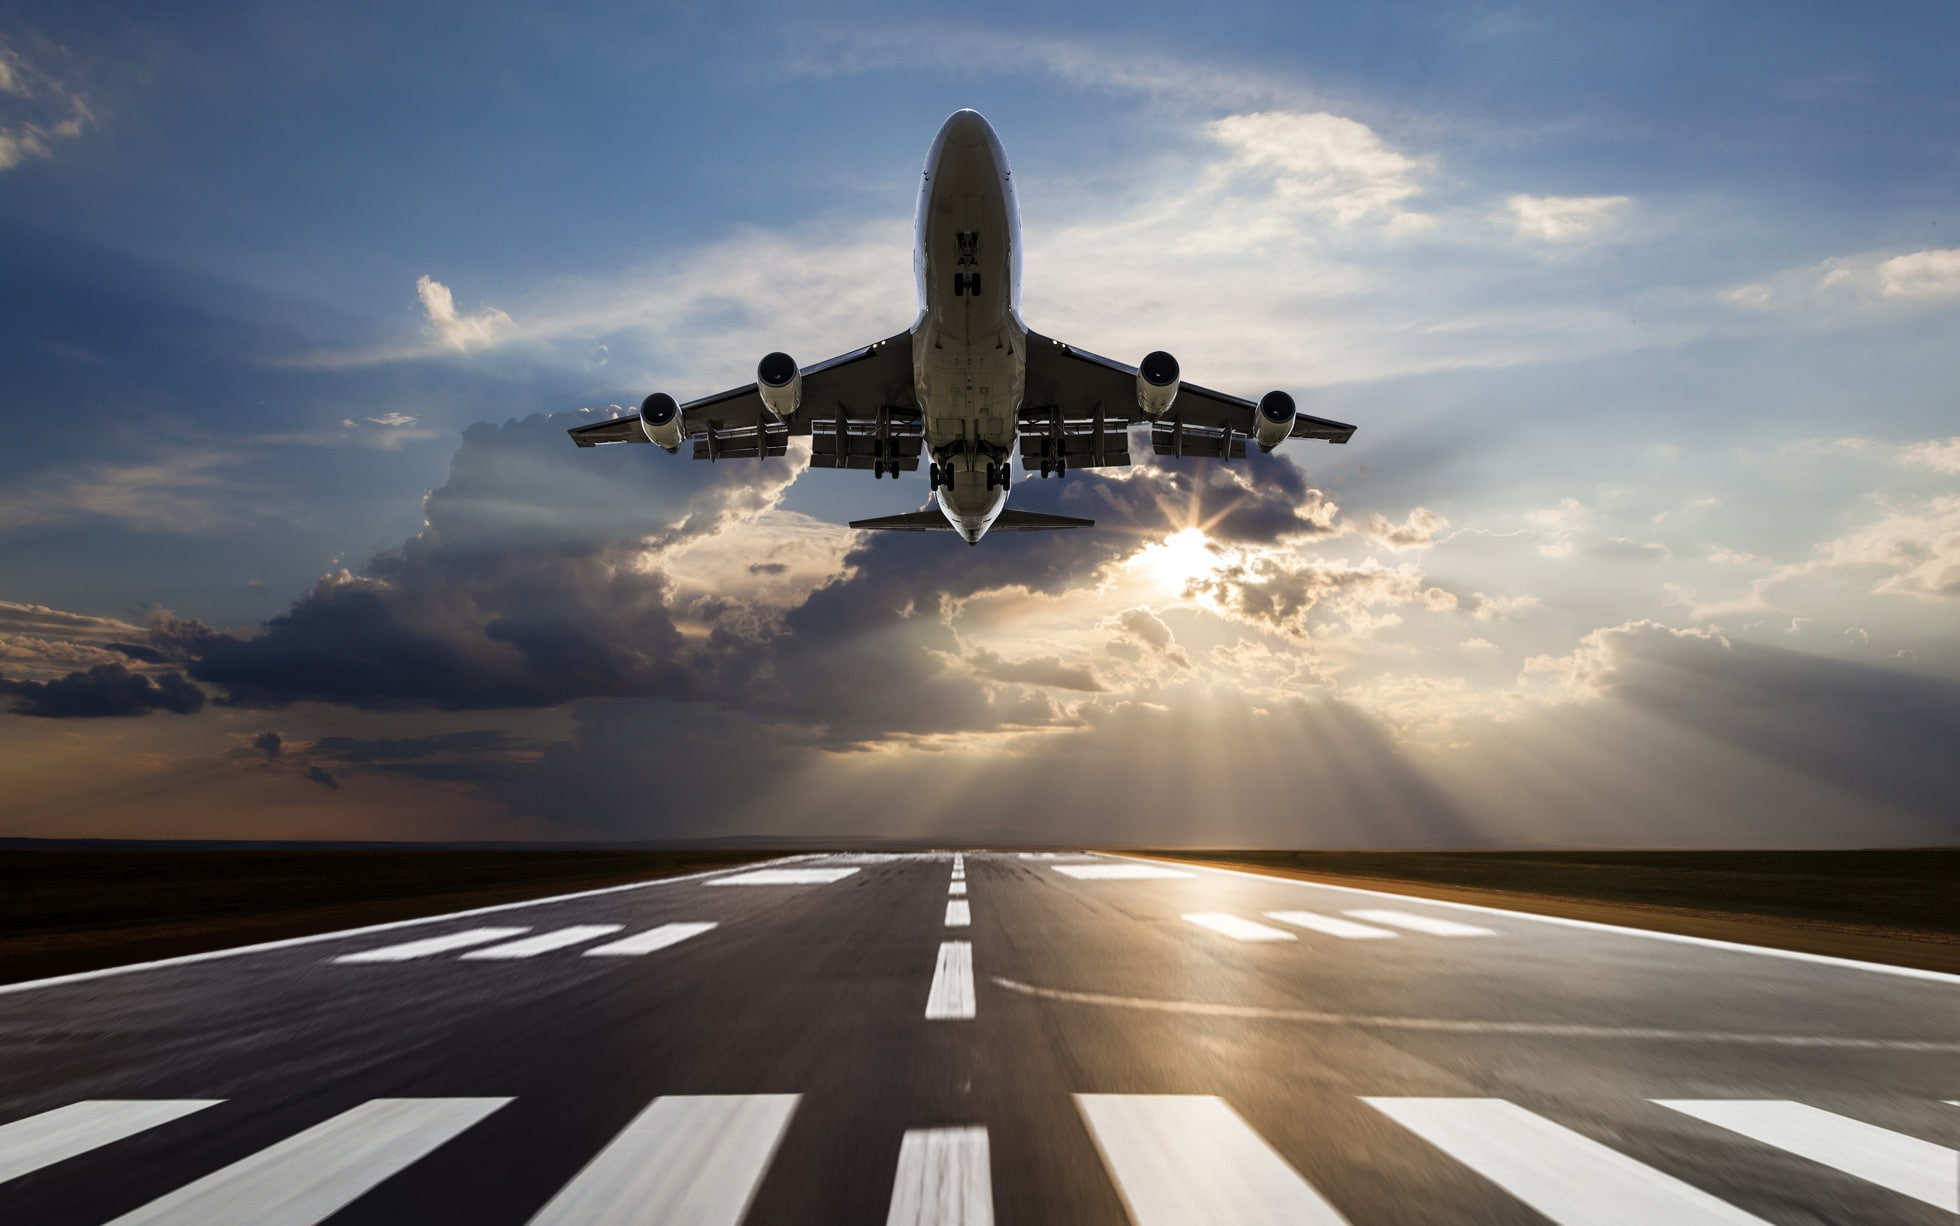 SaaS Founders: How To Optimize Your Runway